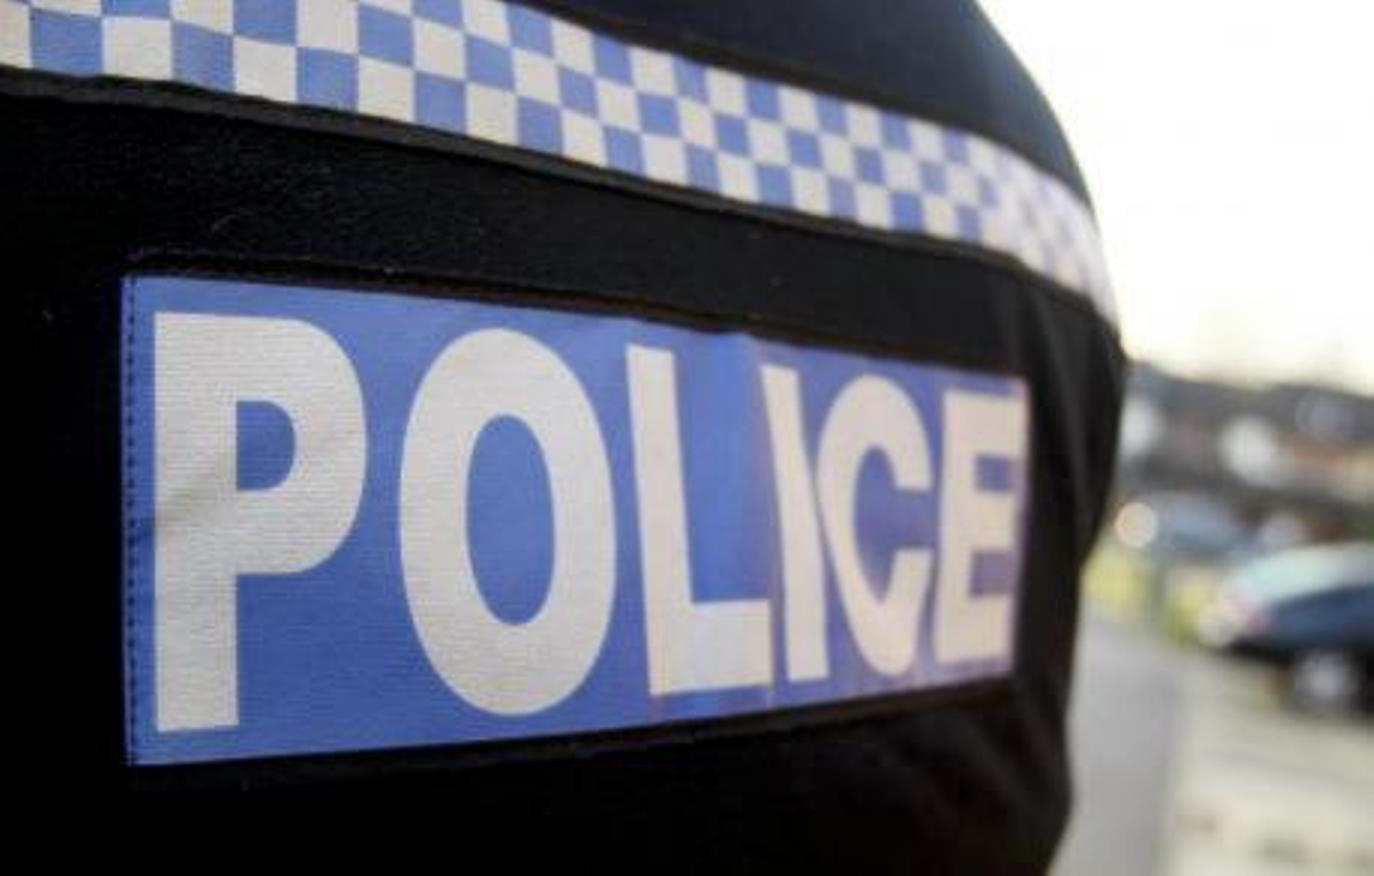 Witnesses called for after man robbed at knifepoint in Laindon